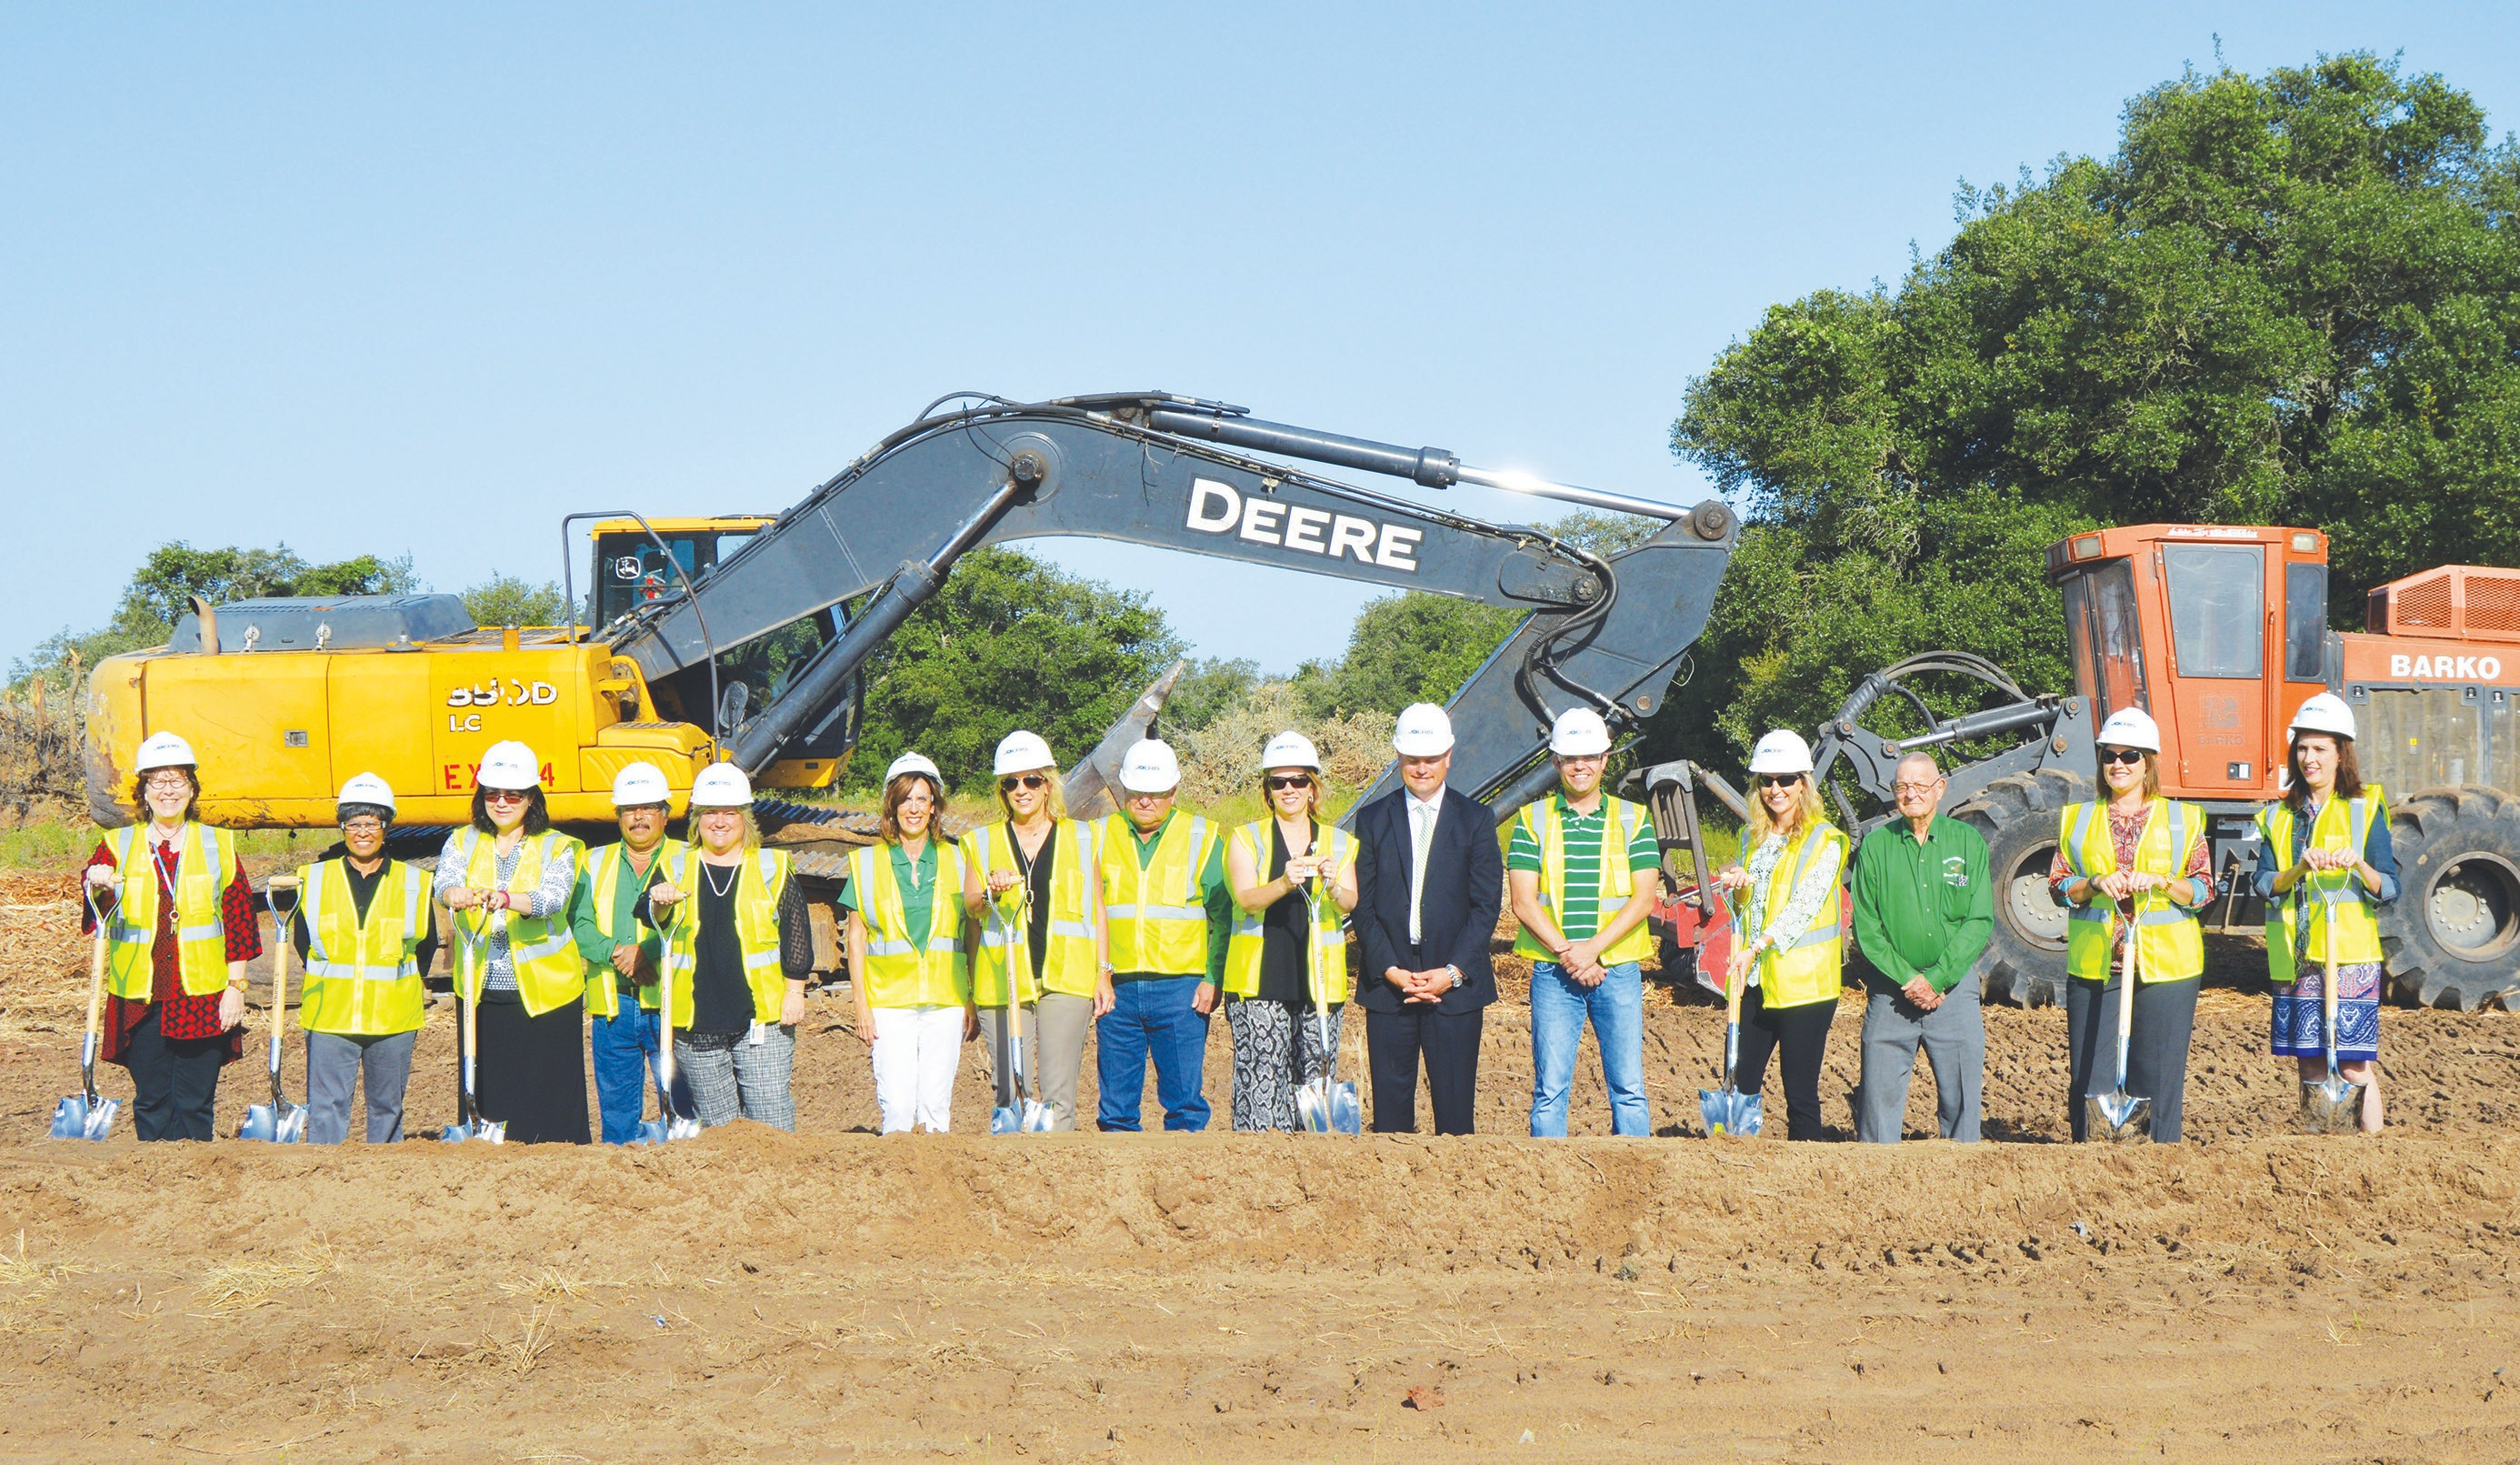 The Pleasanton ISD held a groundbreaking ceremony for the new Elementary school last Wednesday, April 27. Elementary teachers took part in the ceremony along with the school board members and superintendent. The PHS Drumline and Cheerleaders added excitement to it and the other groundbreakings at the Junior High and High School campus renovations. Left to right are Mary Zinda, Blasa Chapa, board trustee; Xenia Katcsmorak, Edward Zamarripa, board trustee; Stephanie Eichman, Pat Cox, board trustee; Cathy Smith, Pete Pawelek,board trustee; Johanna Hagen, Dr. Matthew Mann, superintendent; Joseph Warnken, board trustee; Karen Rankin, Frank Tudyk, board trustee; Tammy Gillespie and Kristen Nelson.